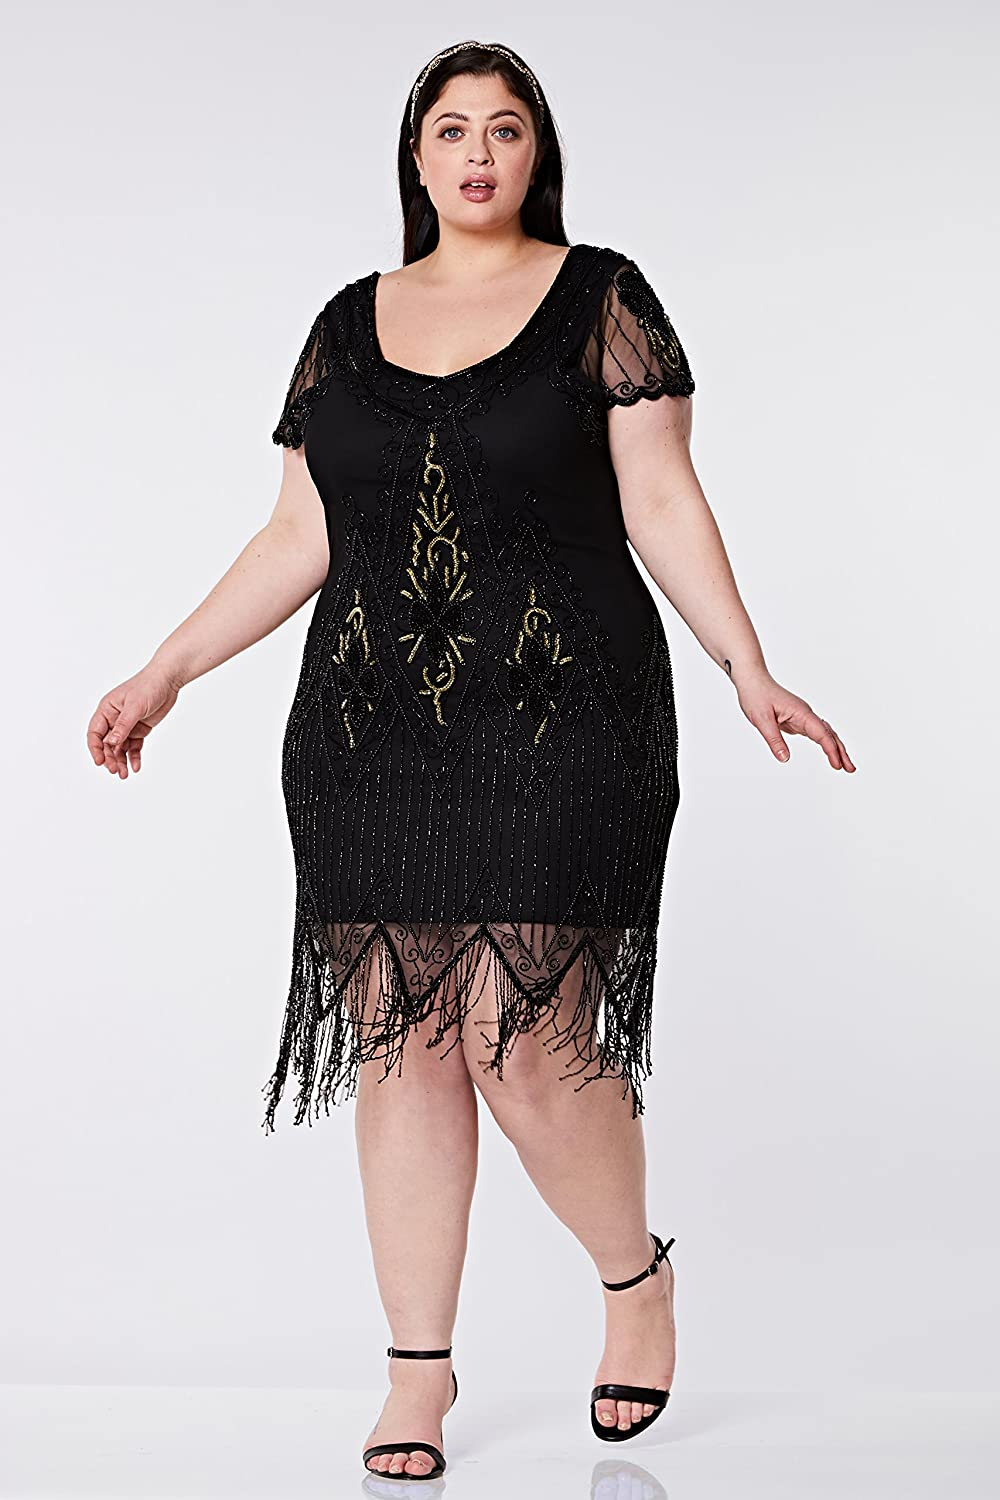 1920s Plus Size Flapper Dresses, Gatsby Dresses, Flapper Costumes gatsbylady london Annette Vintage Inspired Fringe Flapper Dress in Black Gold $124.86 AT vintagedancer.com